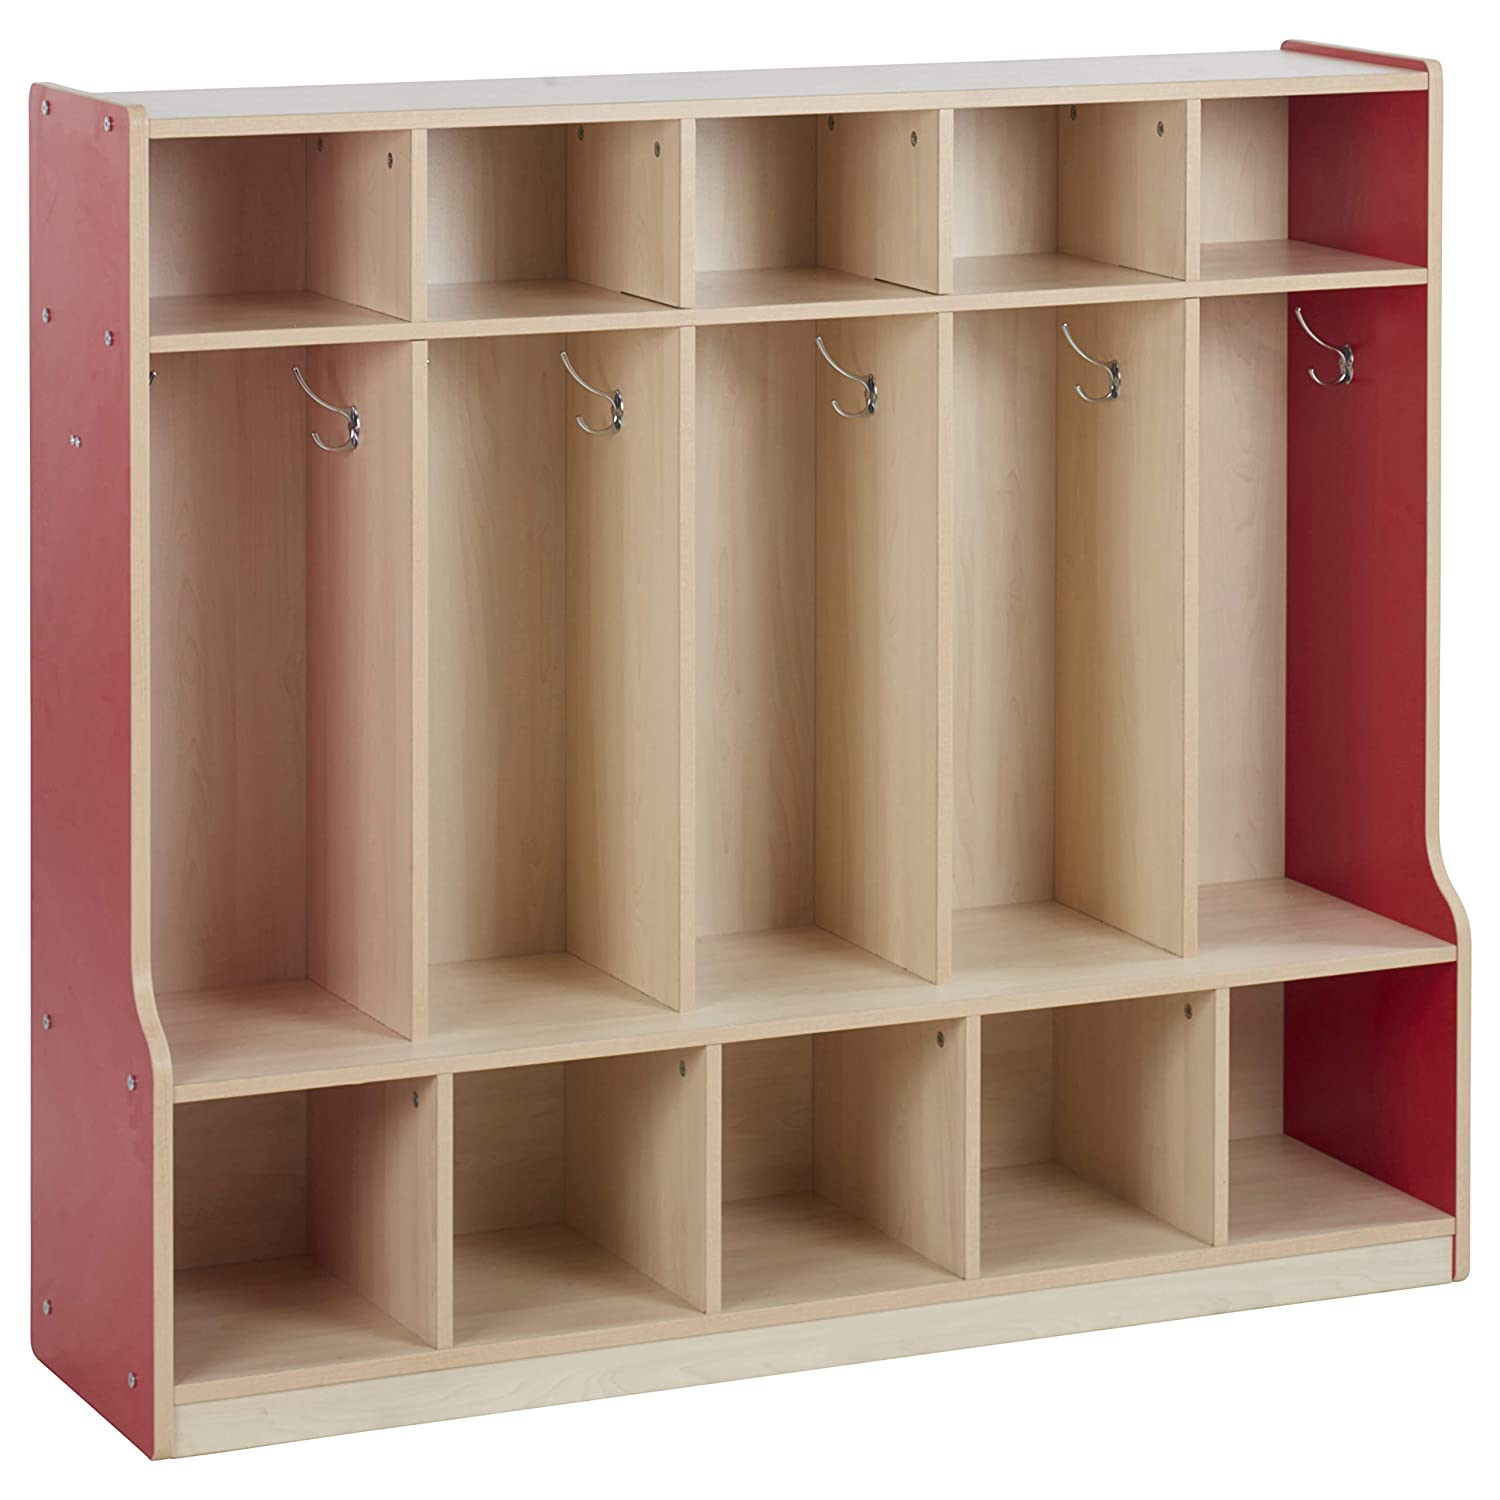 Colorful Essentials 5-Section Laminate Coat Locker with Bench, Shoe Storage Cubbies, Hooks for Backpacks and Hats; Children's Furniture for Classroom, Preschool, Daycare, Home Learning - Maple/Red